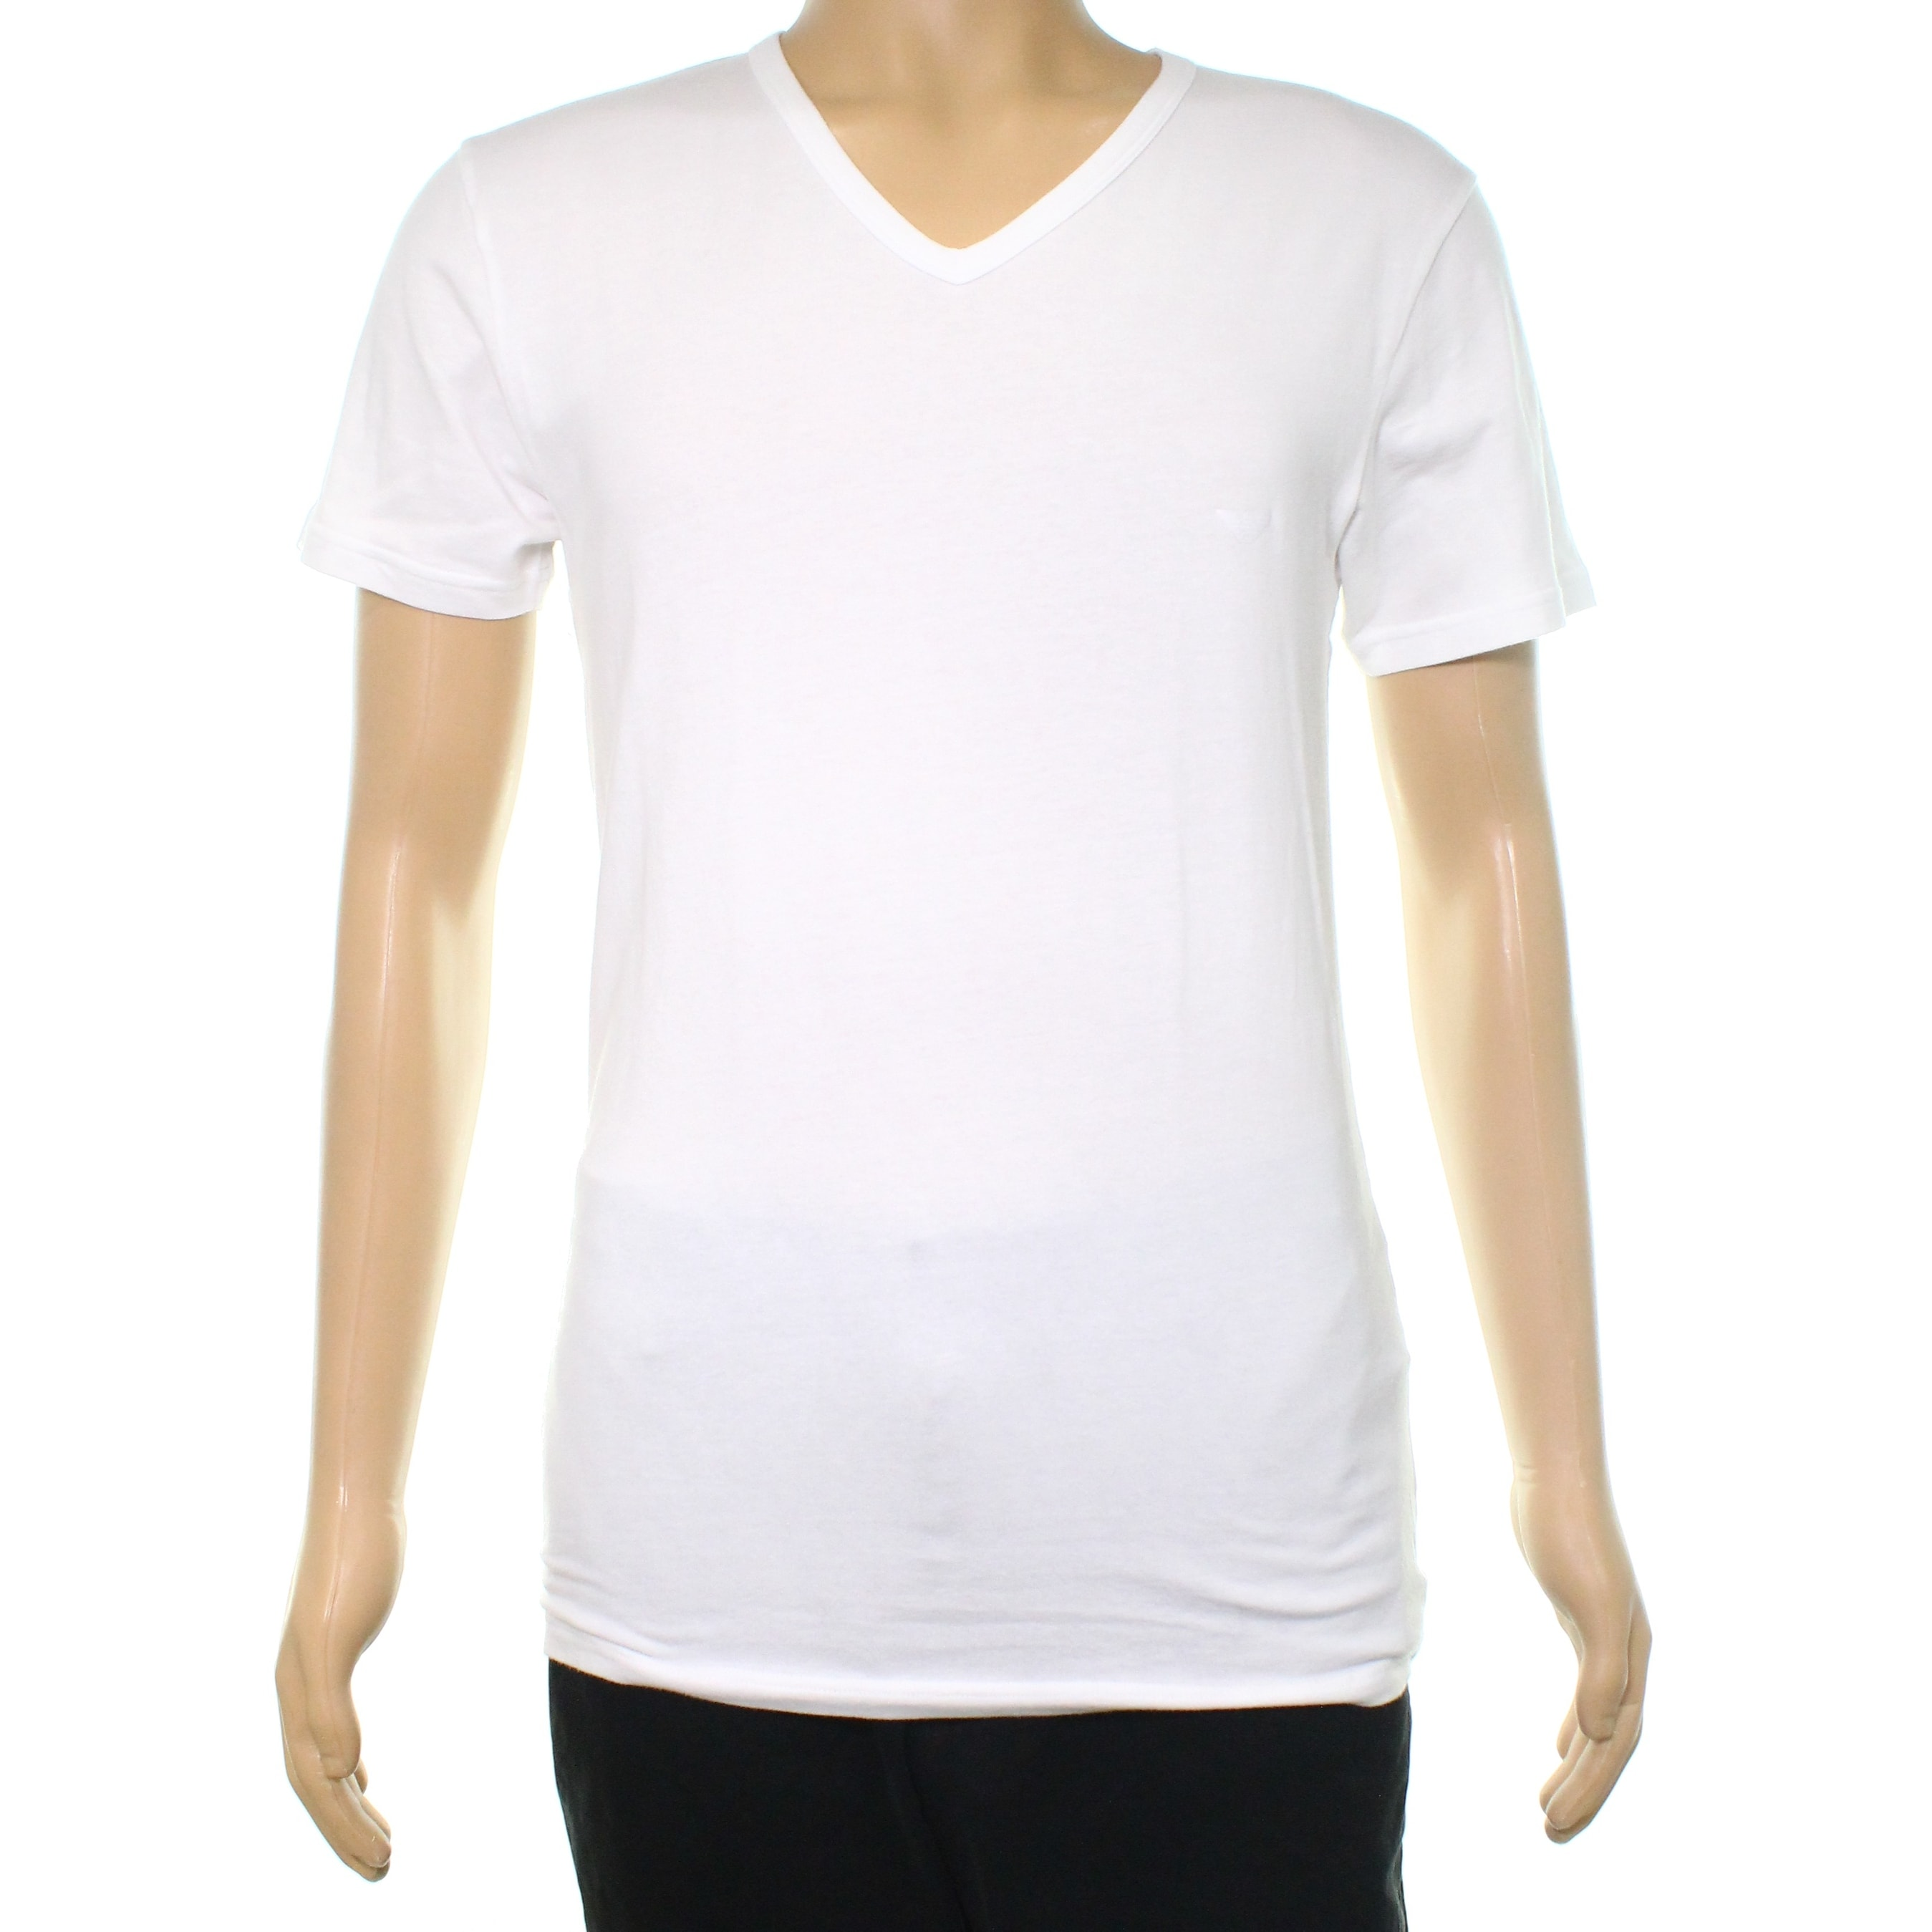 680c2c268f2 Shop Emporio Armani White Mens Size Large L V Neck Stretch T-Shirt - Free  Shipping On Orders Over  45 - Overstock.com - 22388312